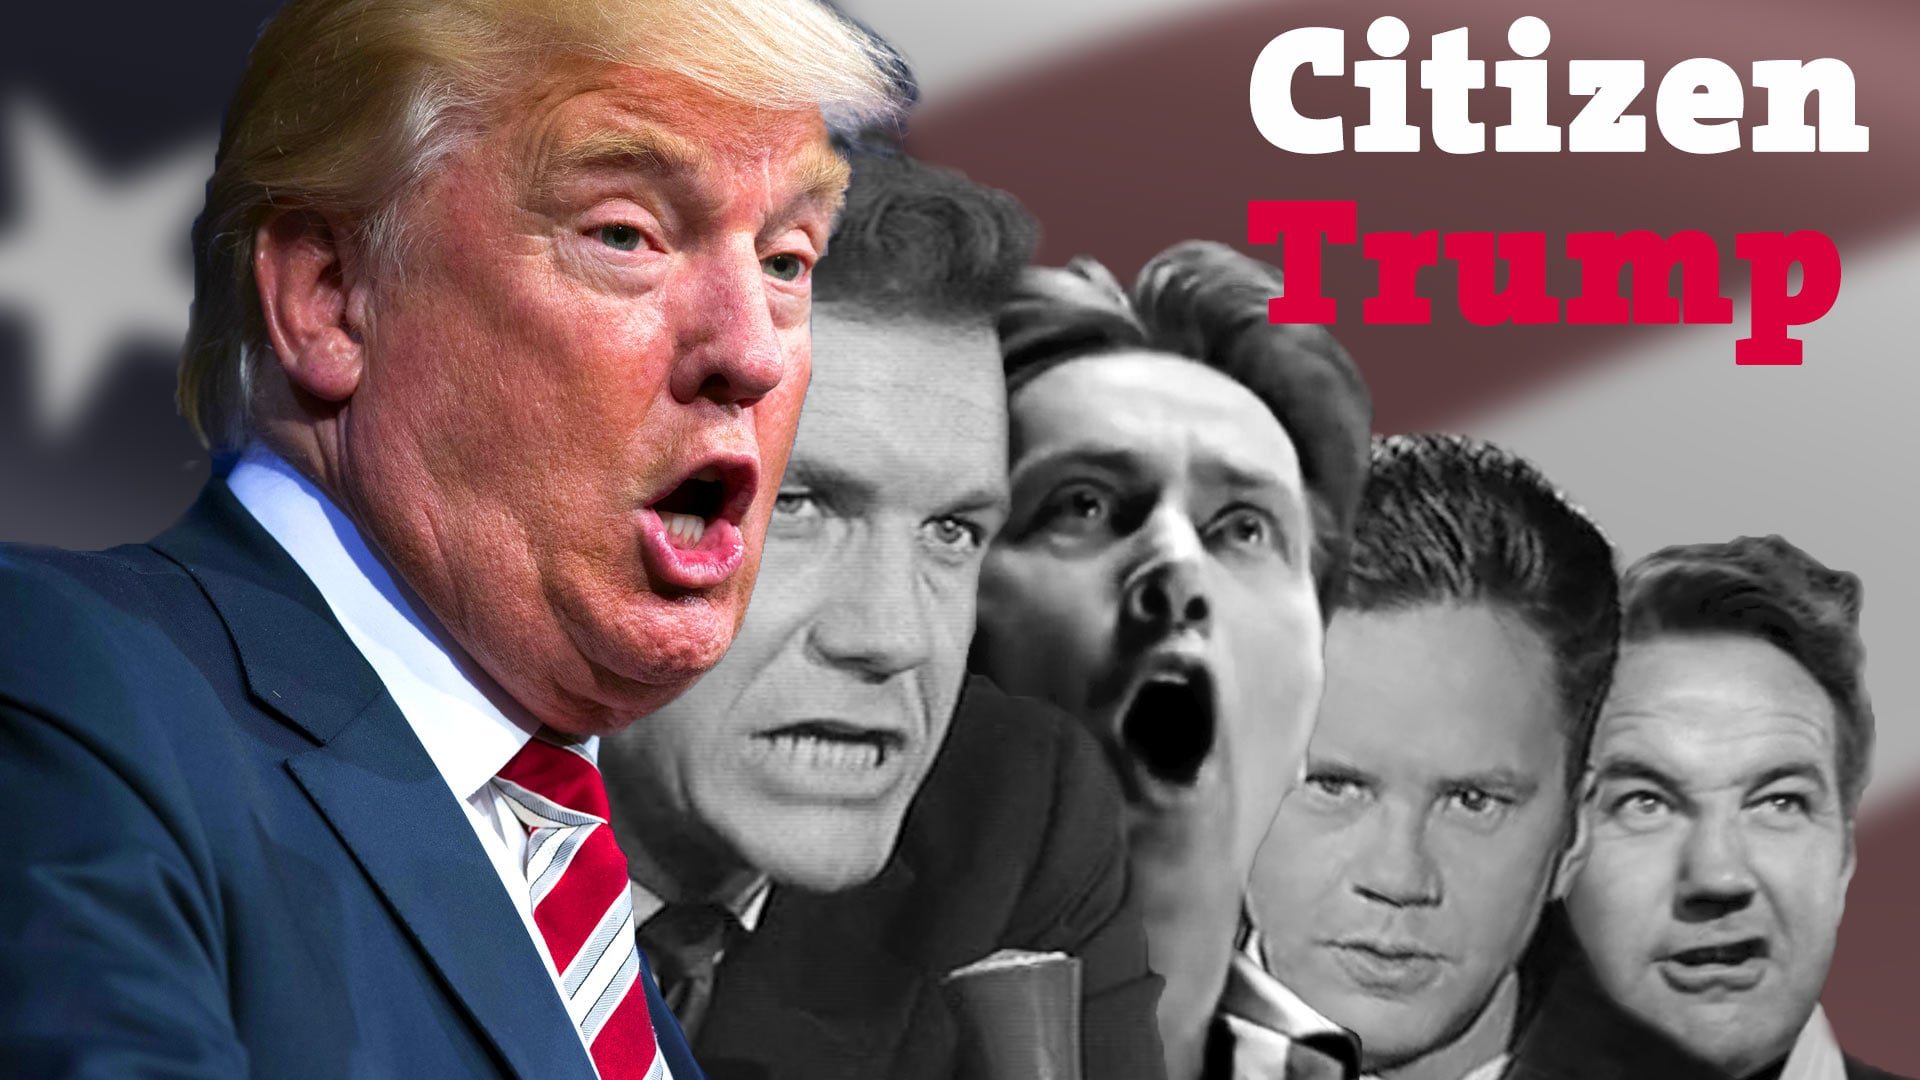 Citizen Trump: The films that shaped Donald Trump